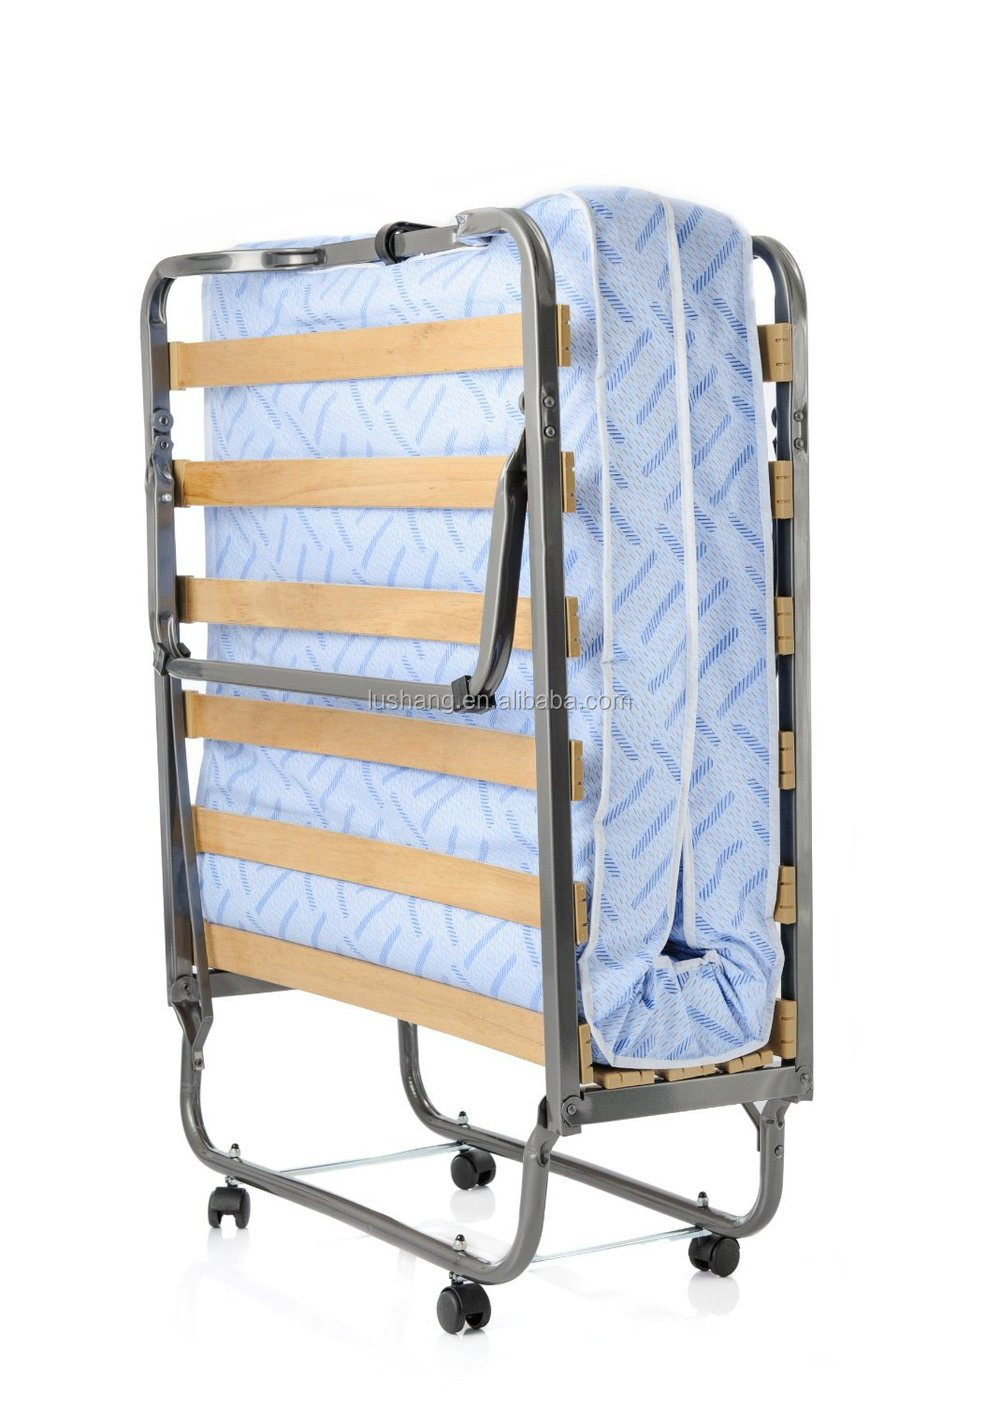 Full size rollaway bed with mattress - Slat Folding Rollaway Bed With Memory Foam Mattress Twin Size